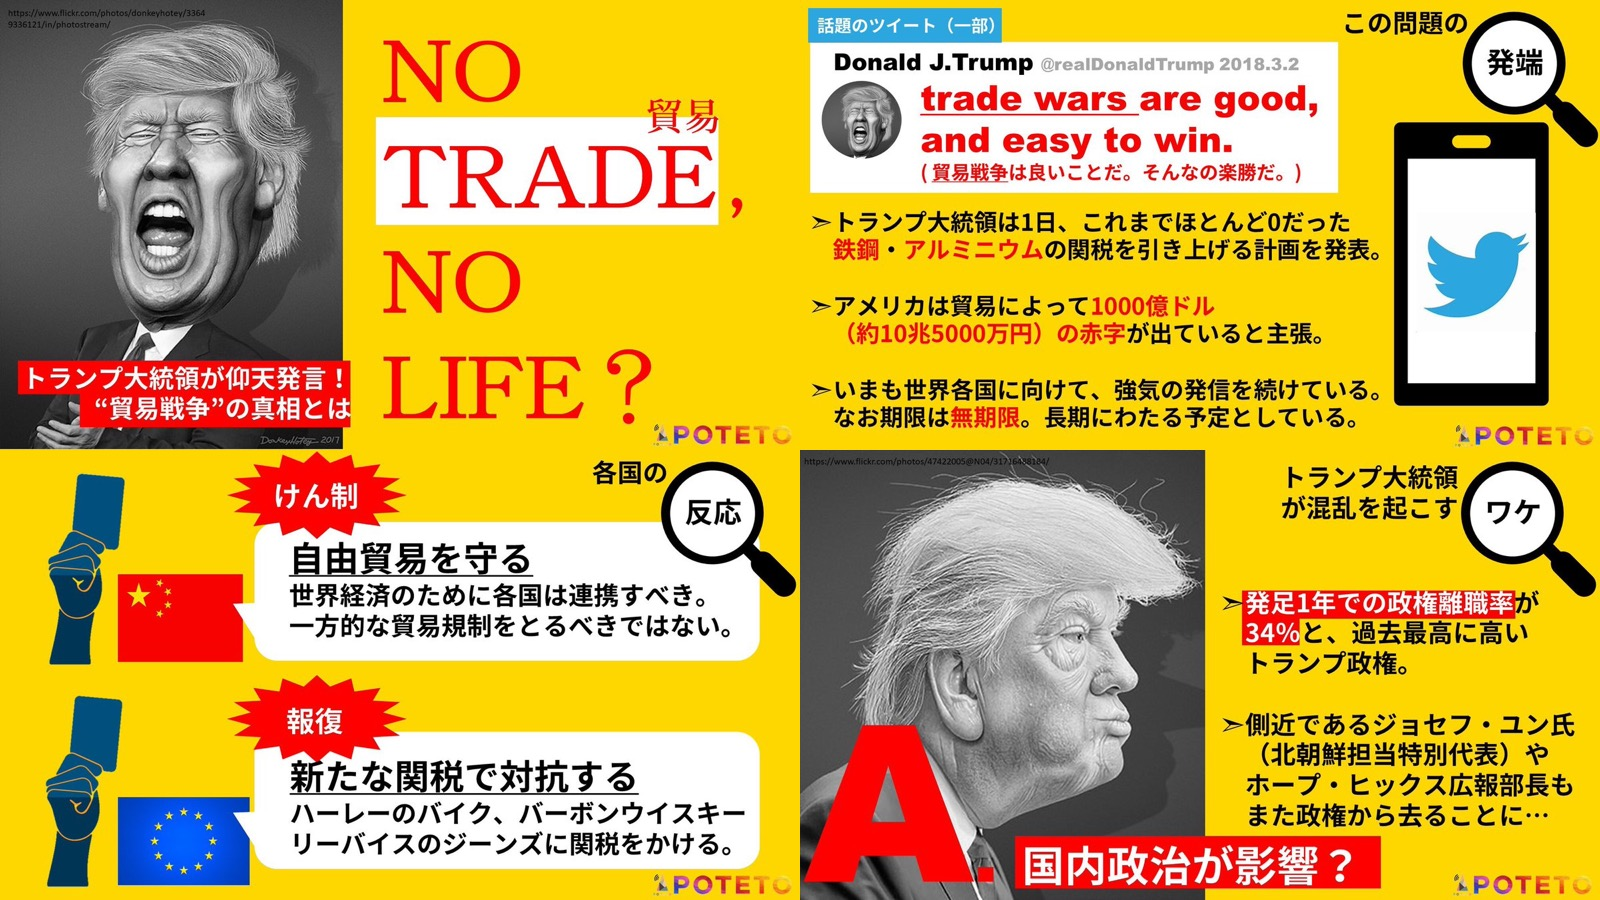 7fb8f1c748d490339c64aa37f2515920 1 - NO TRADE NO LIFE